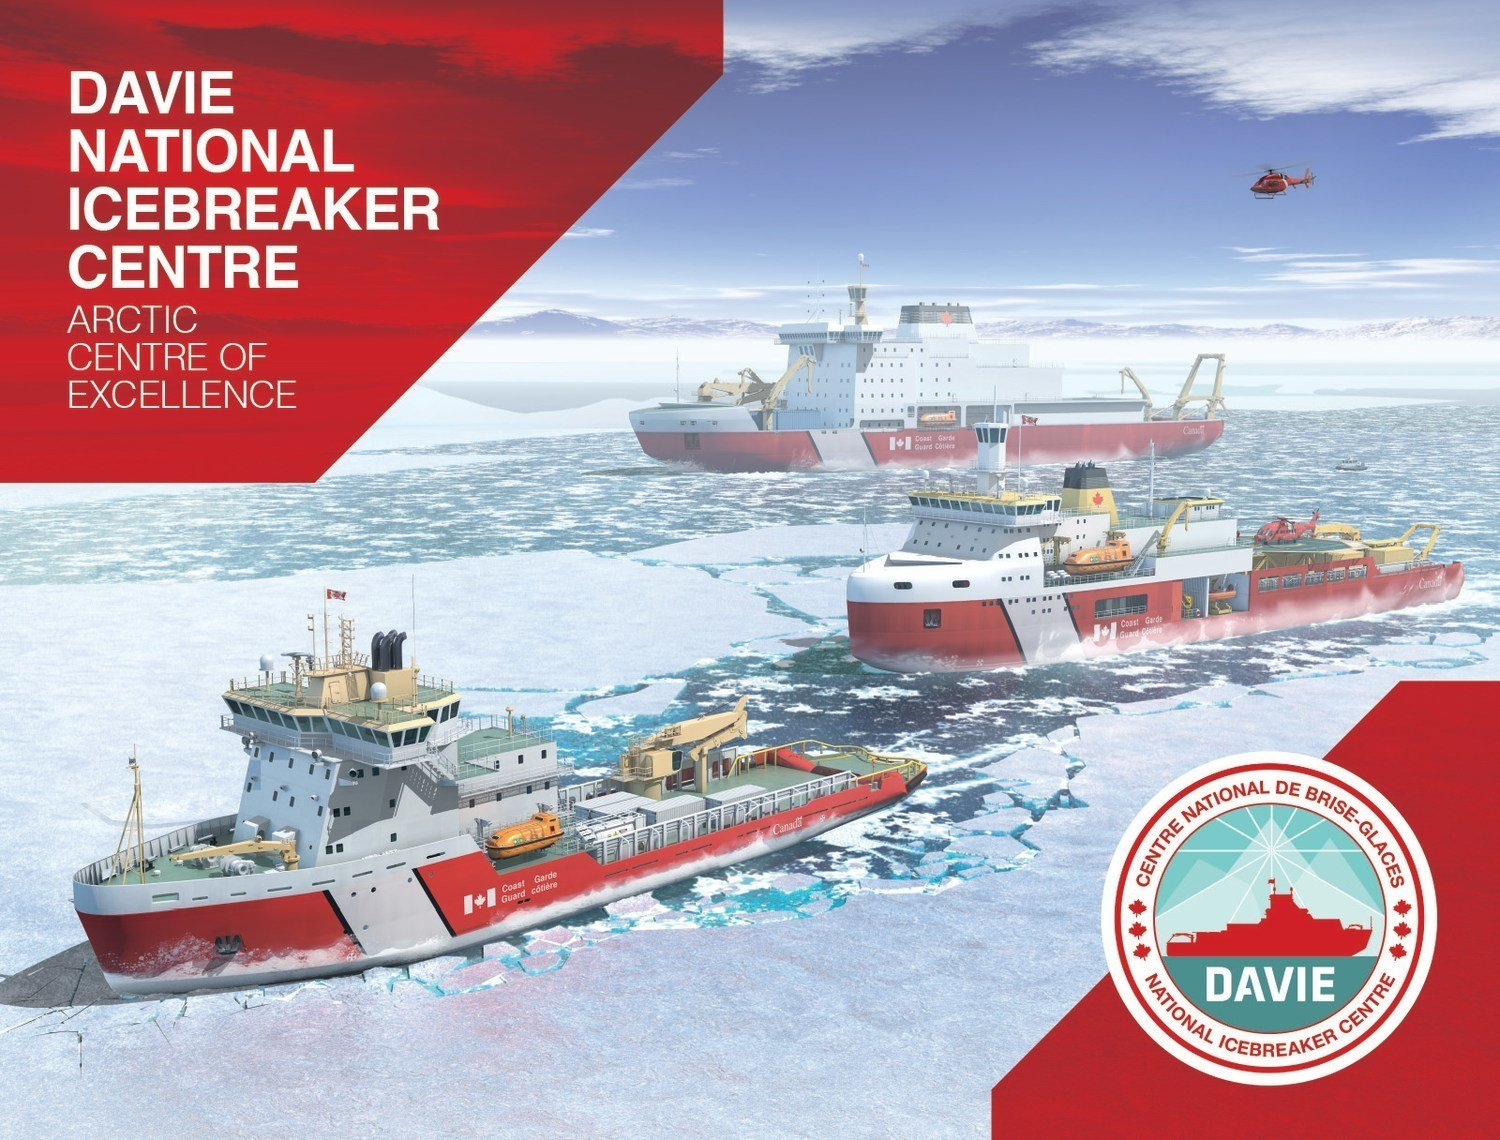 Quebec shipyard launches new icebreaker research hub - ArcticToday